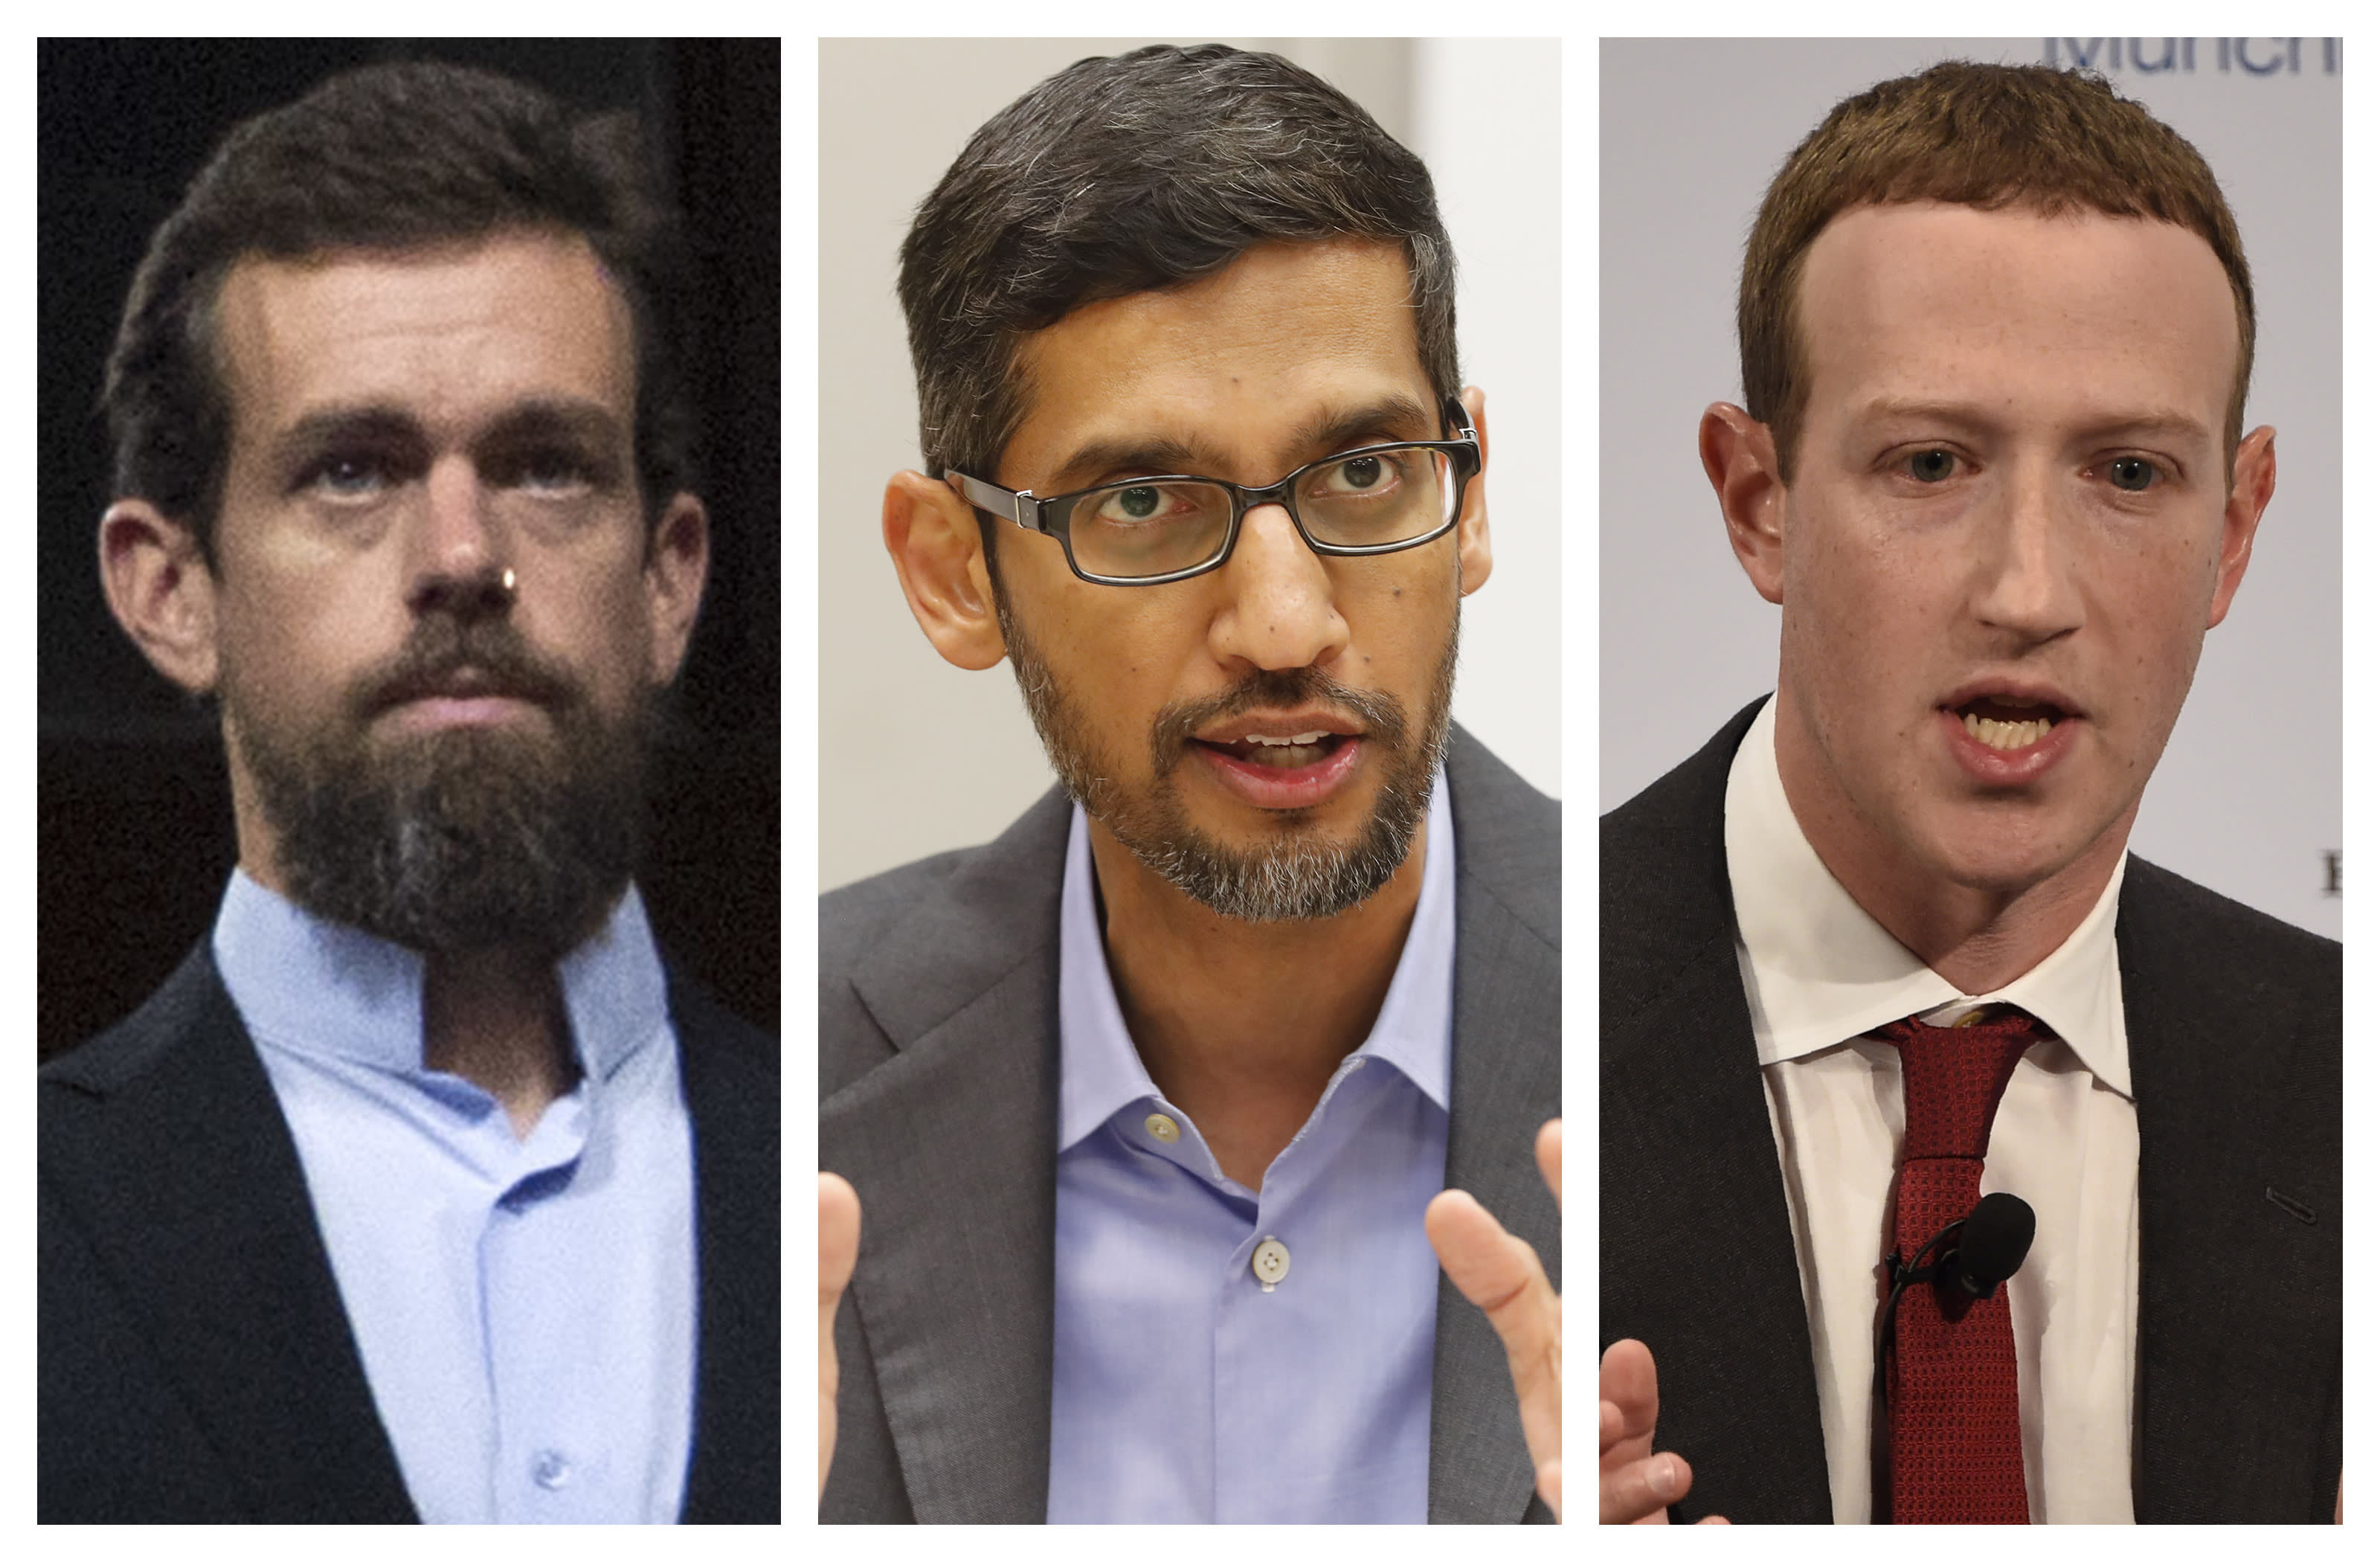 Ceos Of 3 Tech Giants To Testify At Oct 28 Senate Hearing